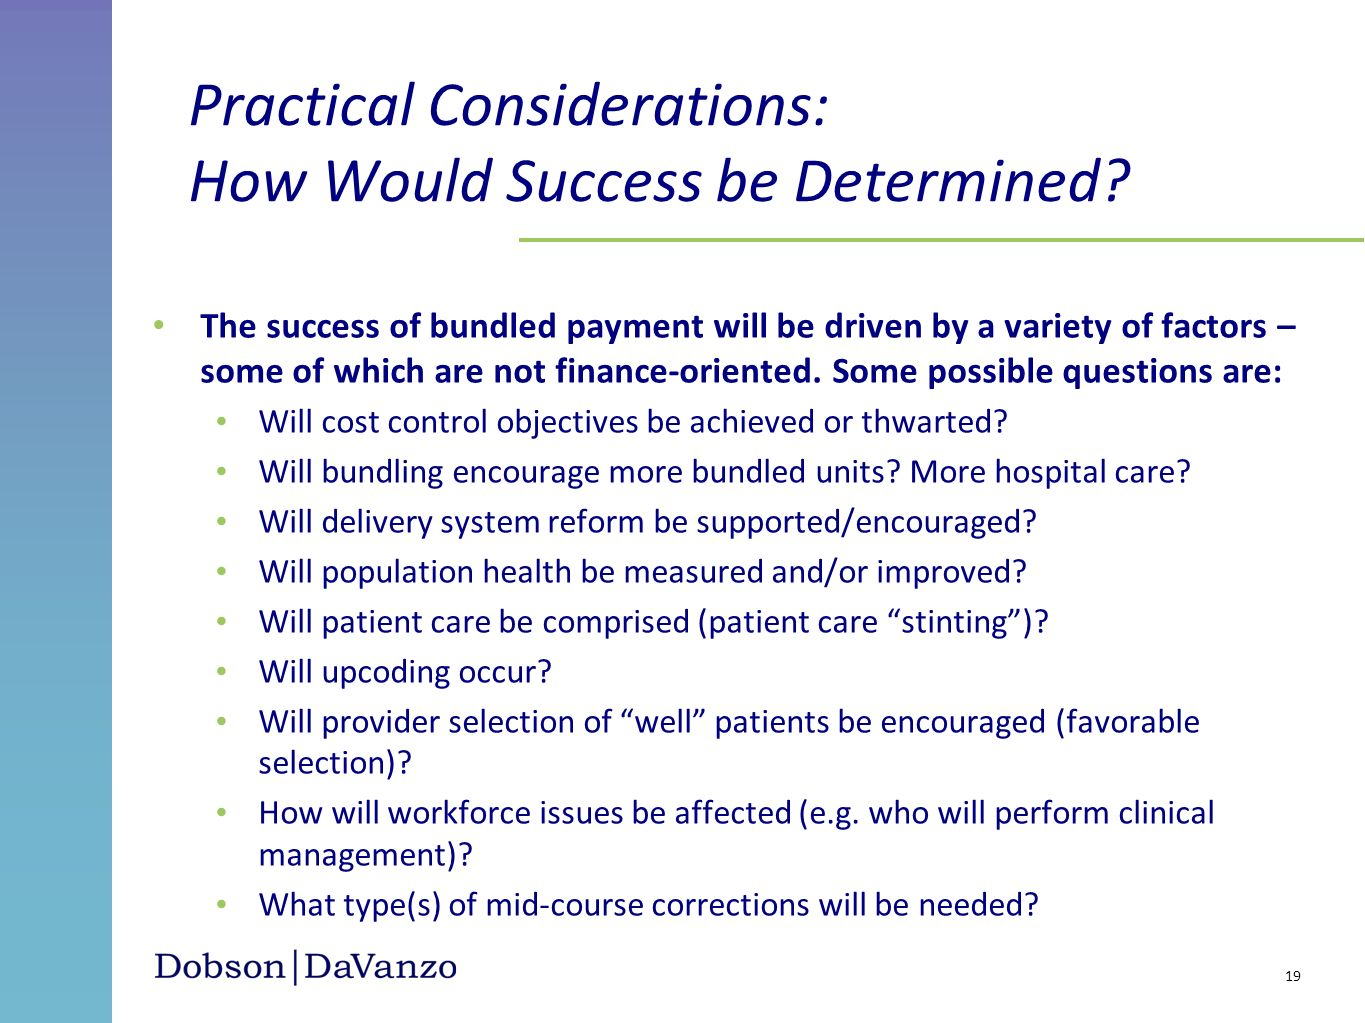 The success of bundled payment will be driven by a variety of factors – some of which are not finance-oriented. Some possible questions are: Will cost